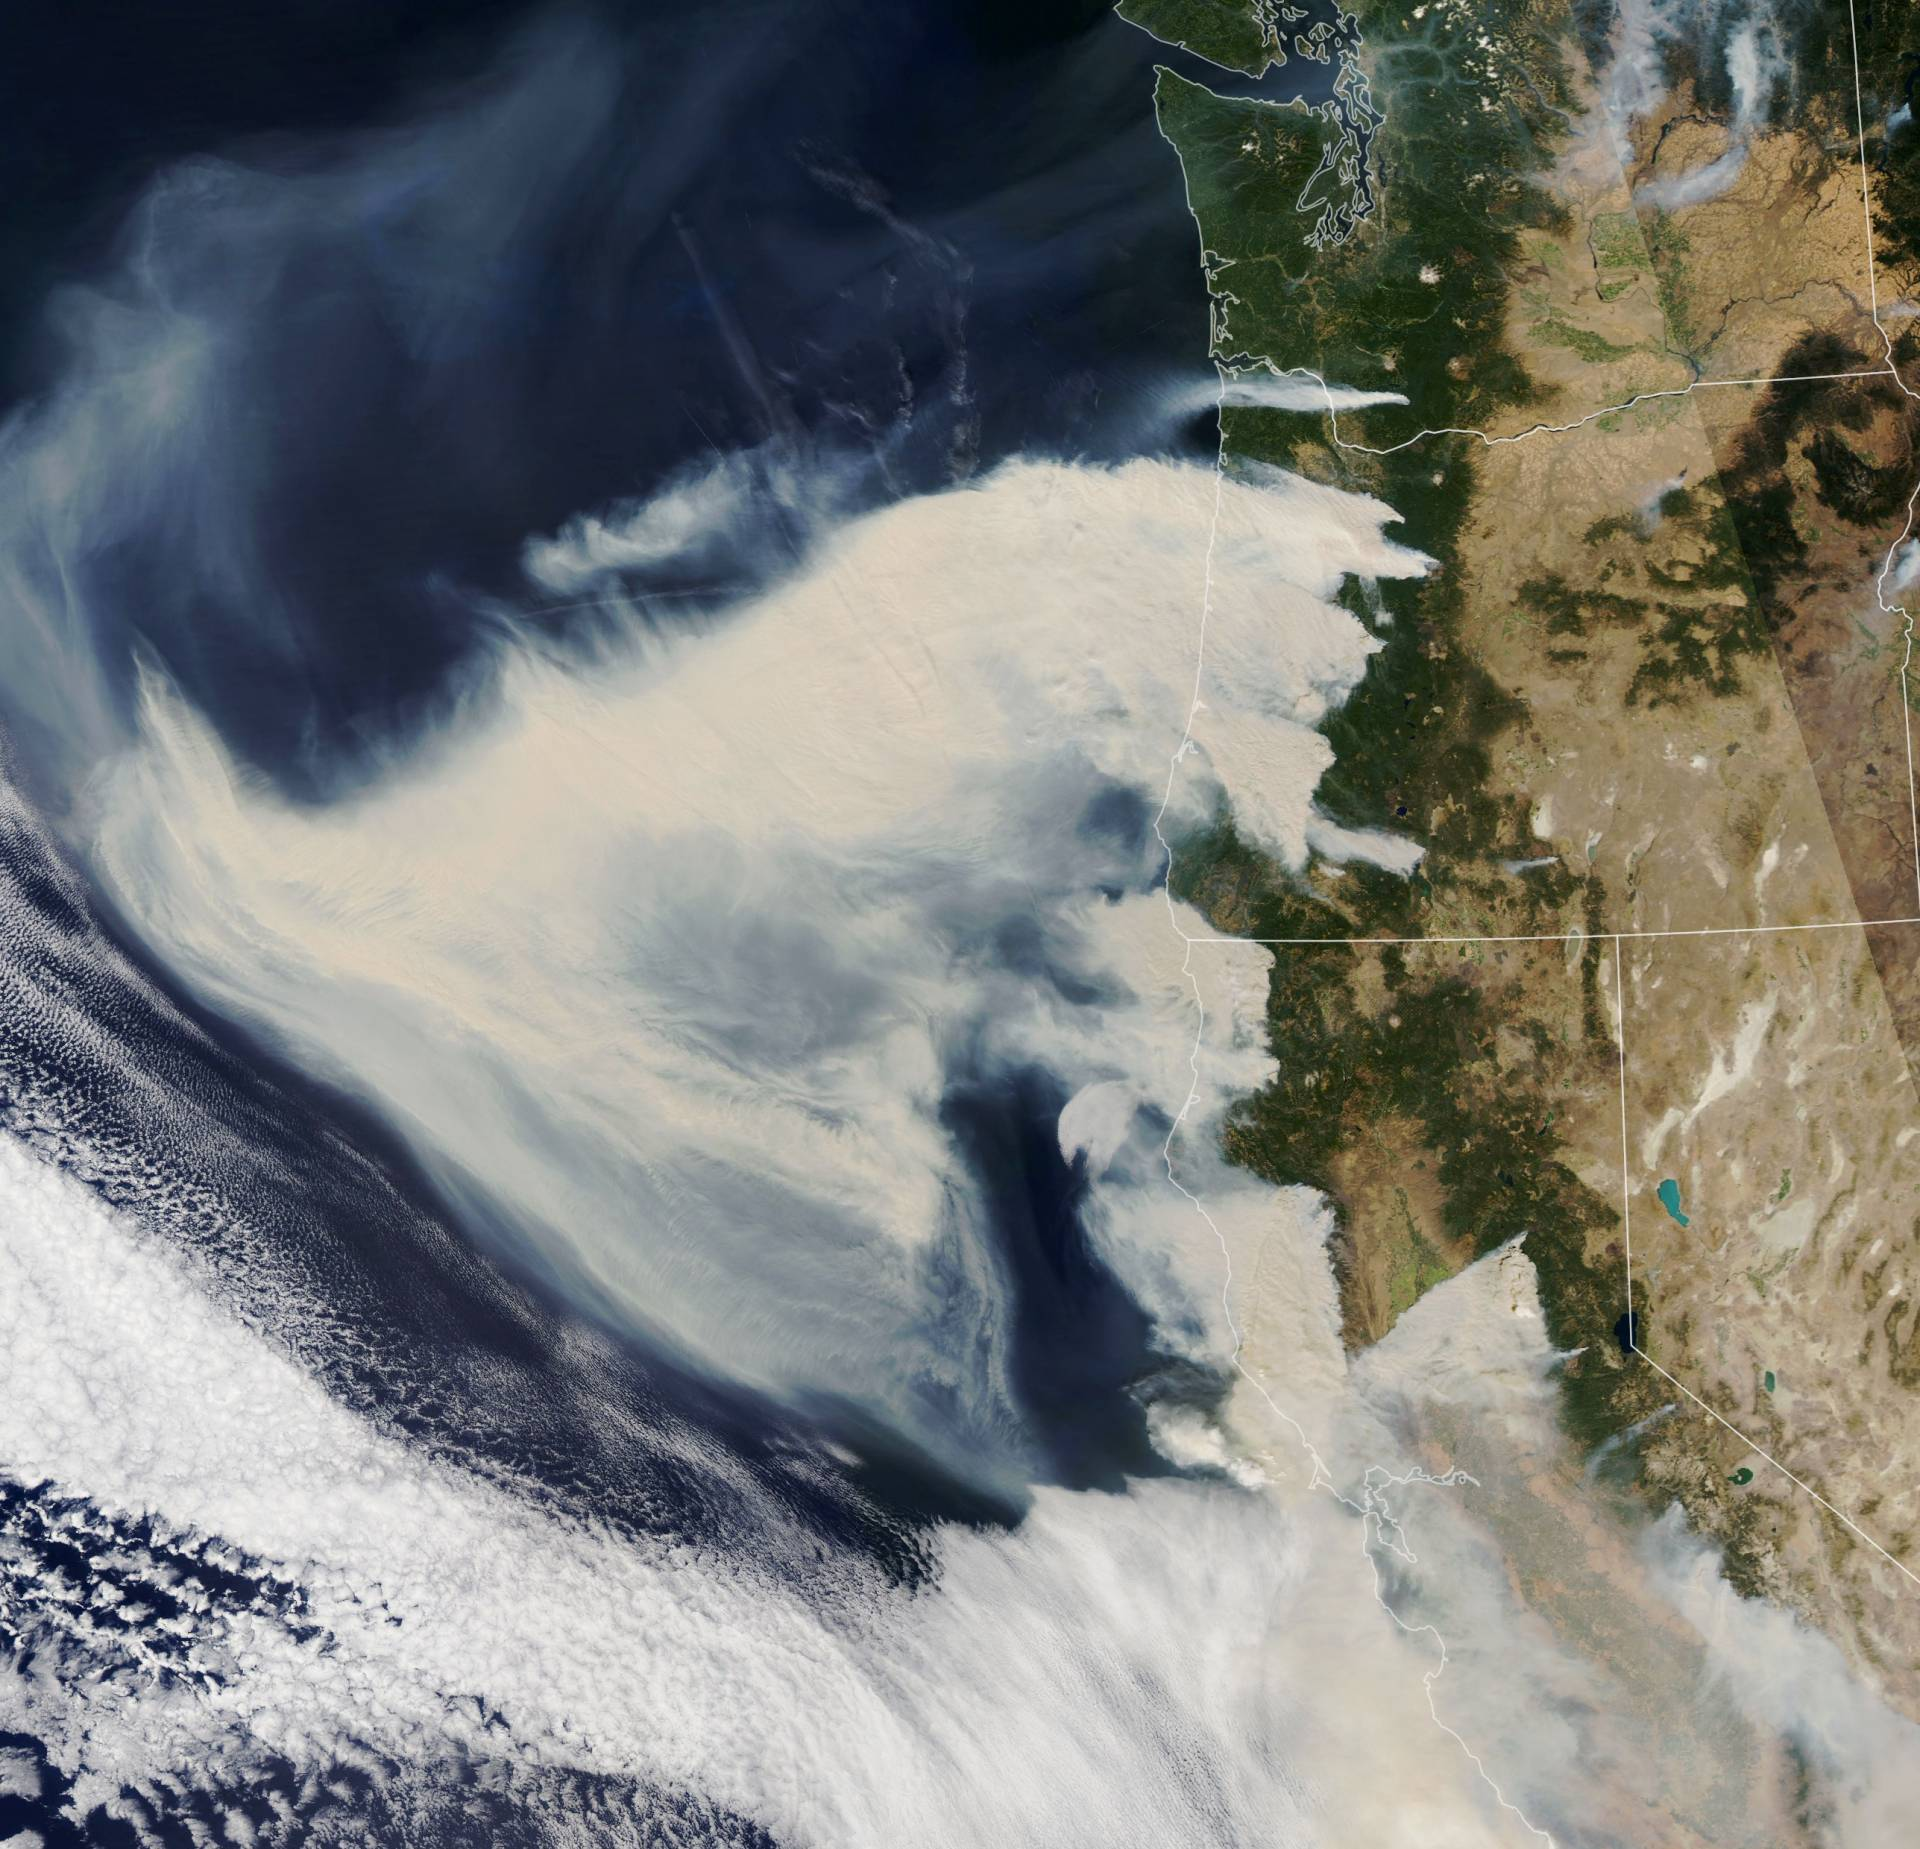 As intense fires raged up and down the Pacific coast, NASA's Aqua satellite captured this natural color image of thick smoke plumes streaming west on Sept. 8, 2020. NASA Earth Observatory image by Lauren Dauphin, using MODIS data from NASA EOSDIS/LANCE and GIBS/Worldview.